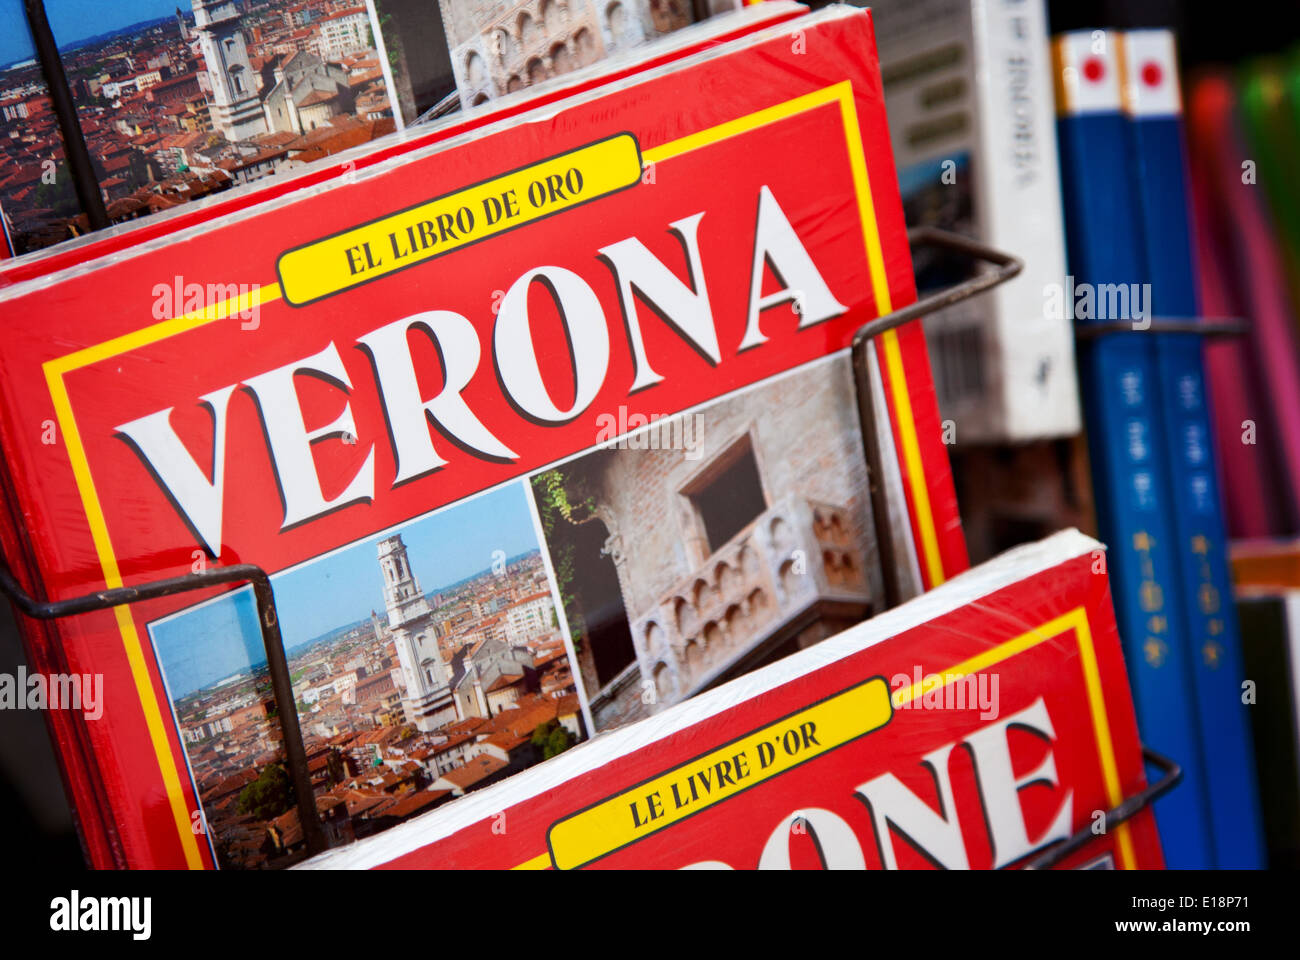 Verona travel guide at newsstand - Stock Image